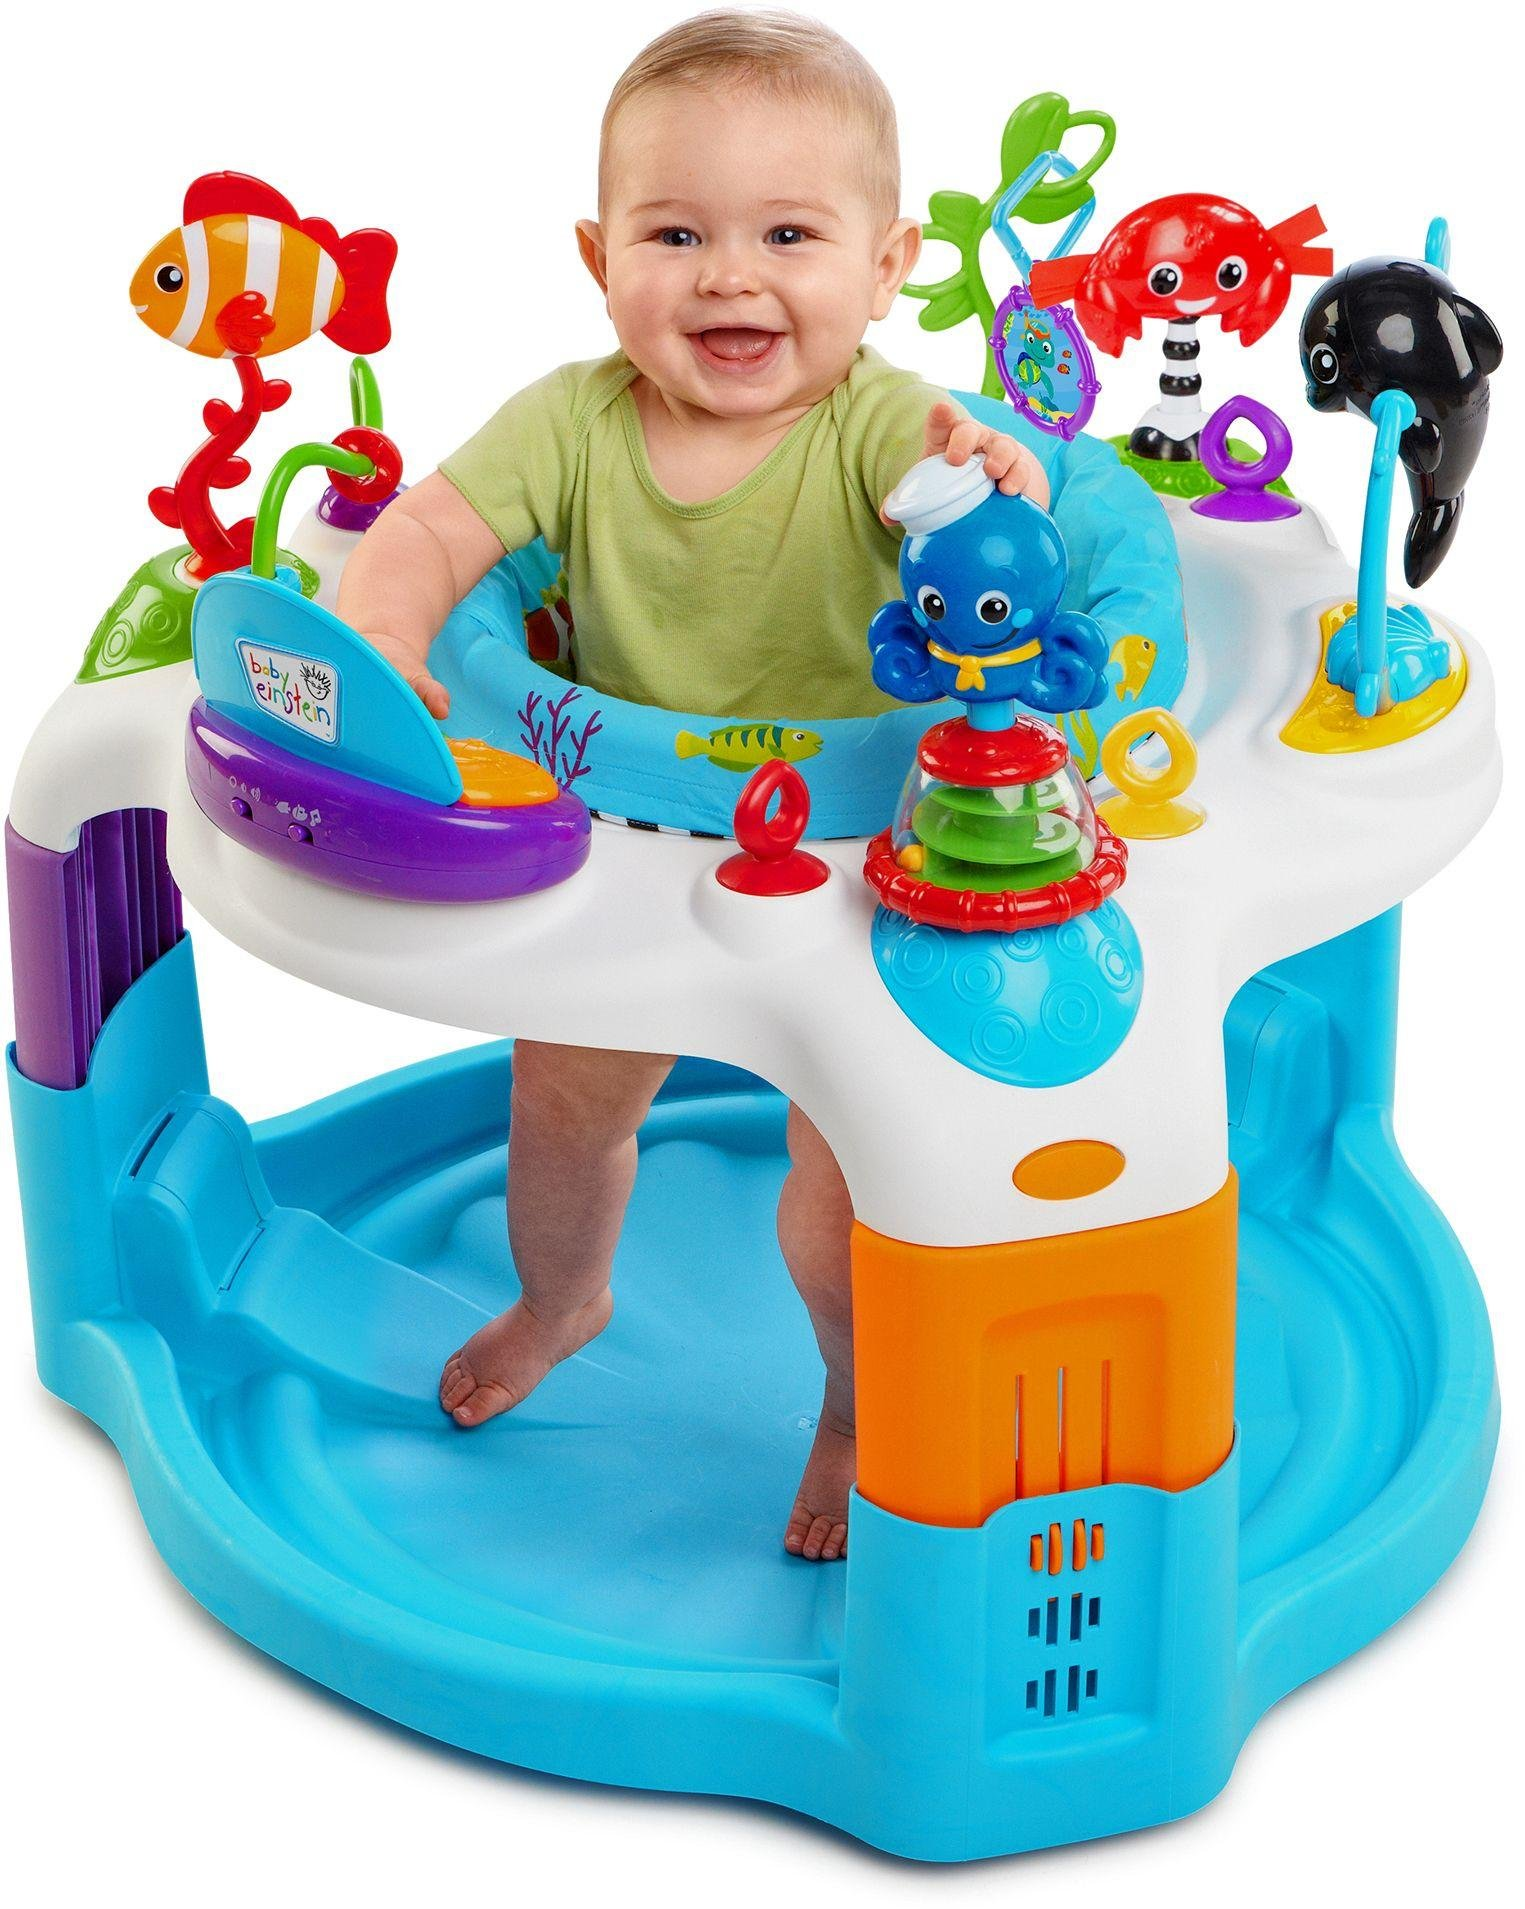 Model Of Baby Einstein Rhythm of the Reef Activity Saucer For Your Plan - Fresh baby activity chair Amazing